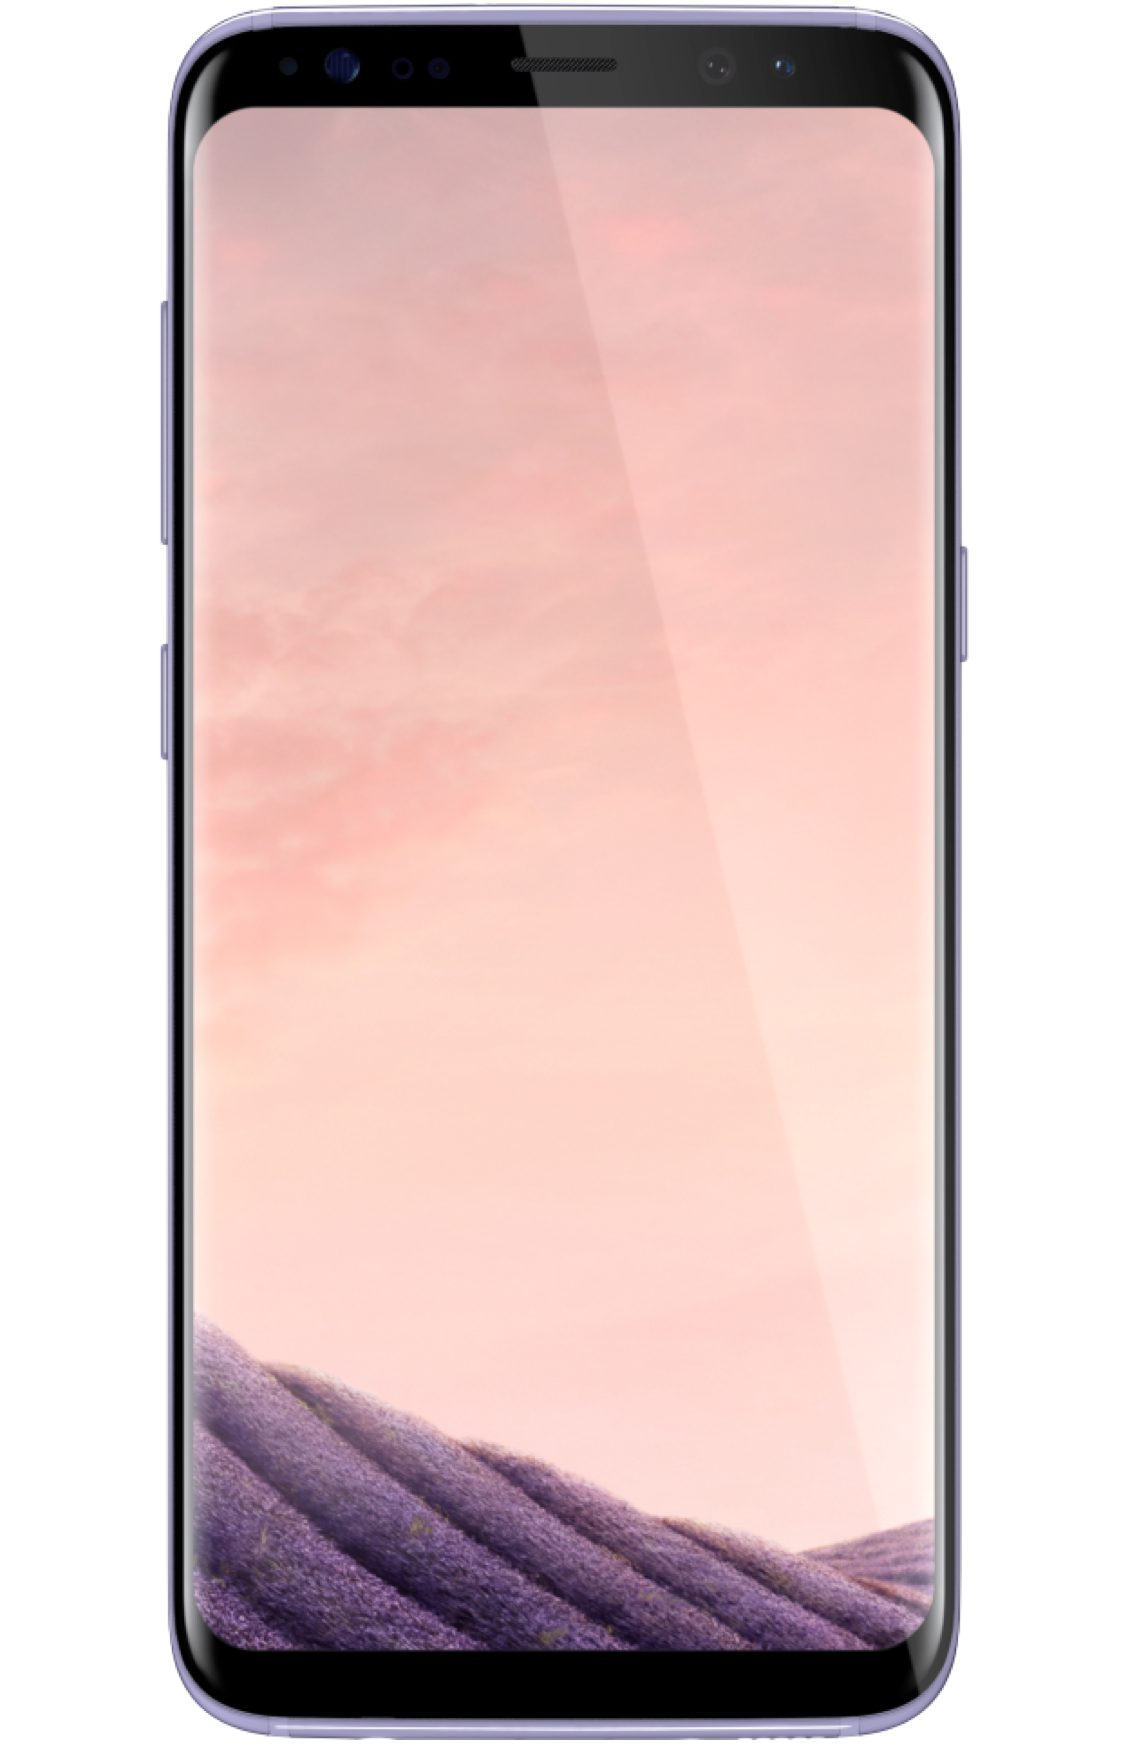 Samsung Galaxy S8 Pre-Owned - Features 7c544ffe6